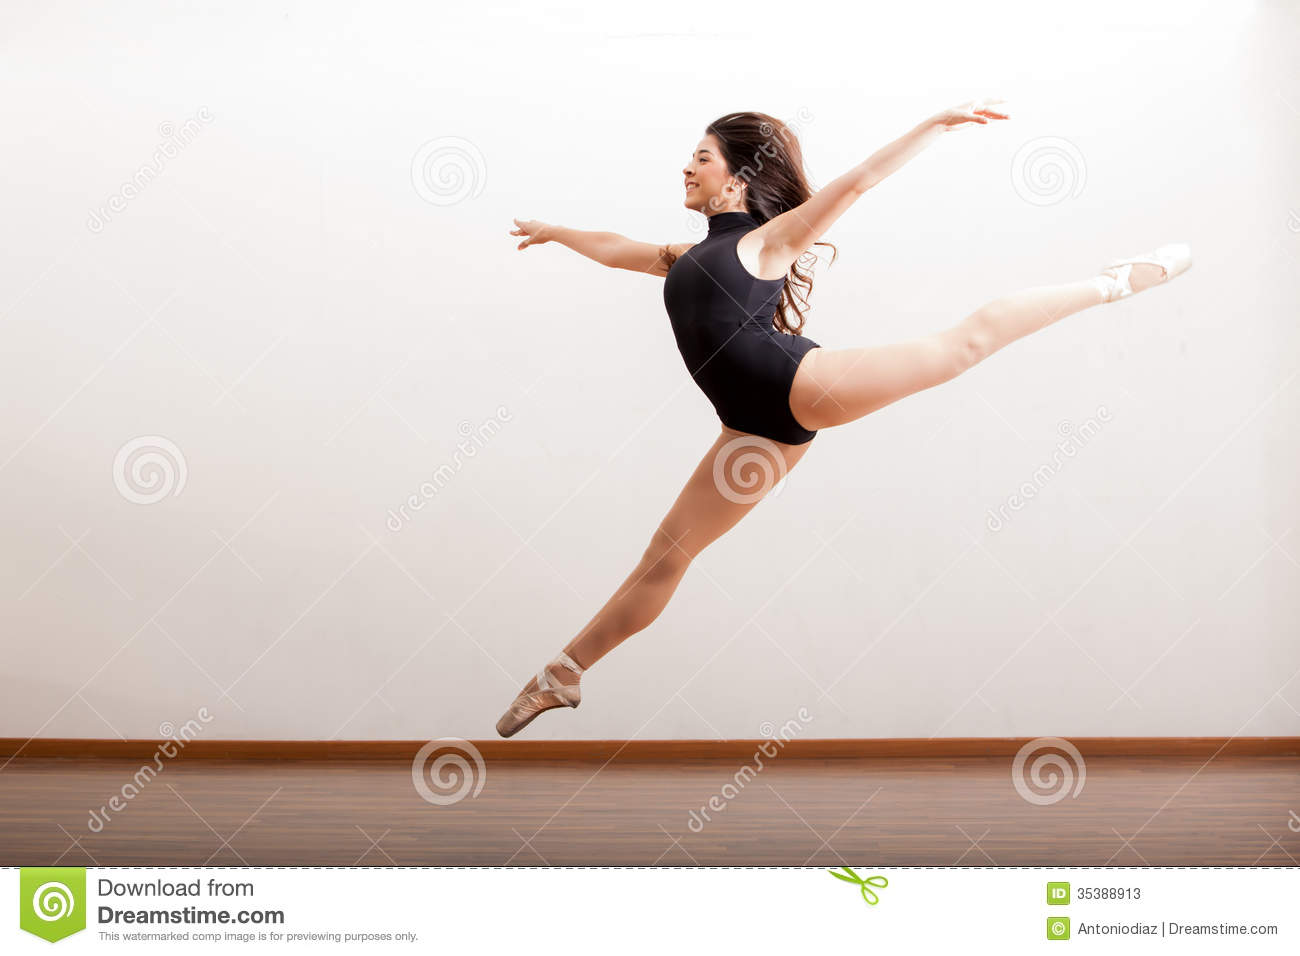 Happy Ballet Dancer Jumping Stock Image - Image: 35388913